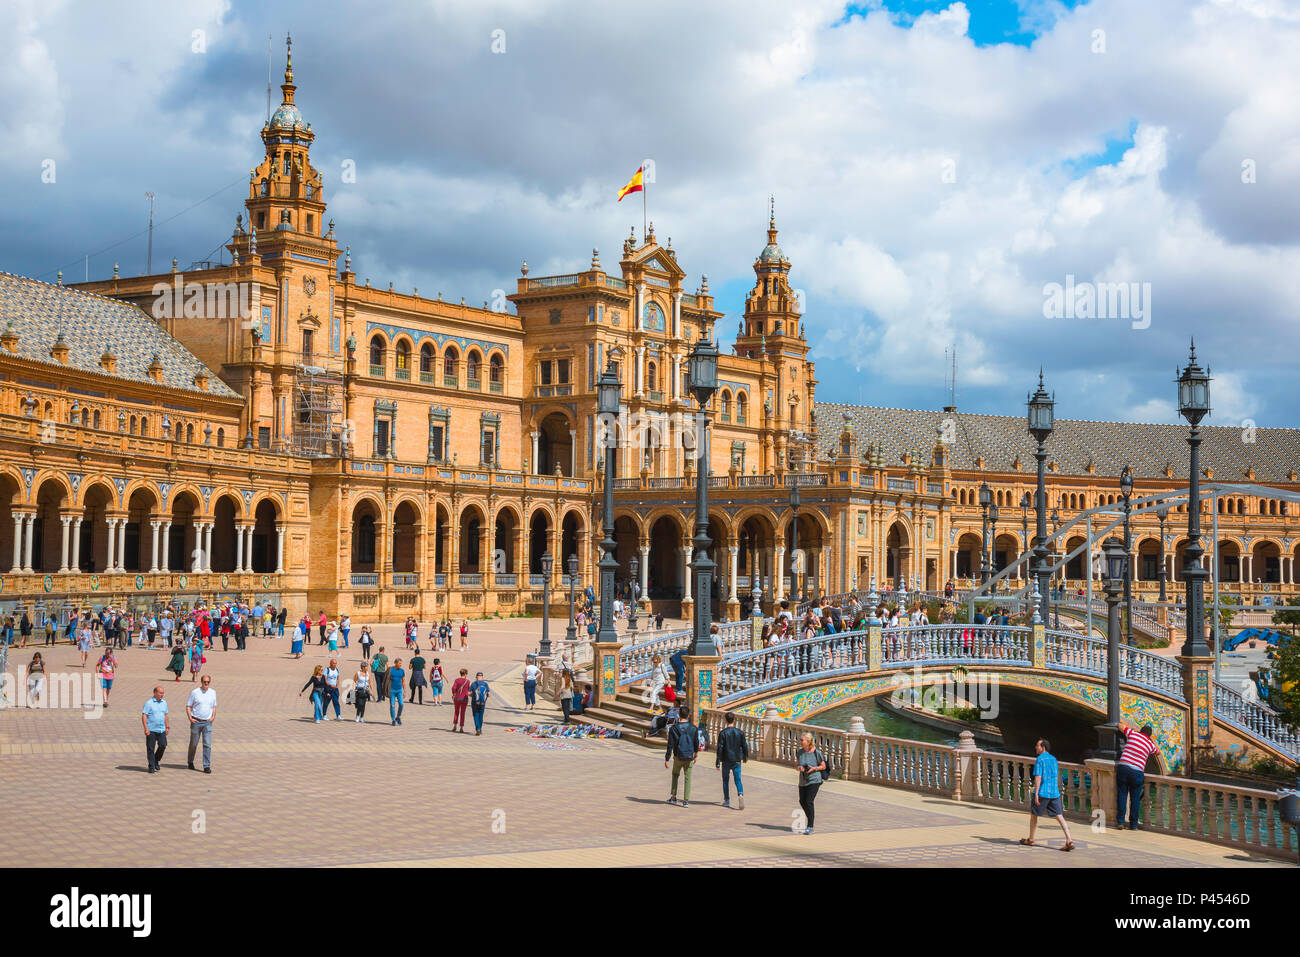 Plaza de Espana Seville, view of people walking through the historic Plaza de Espana in Seville (Sevilla) on a summer afternoon, Andalucia, Spain. Stock Photo